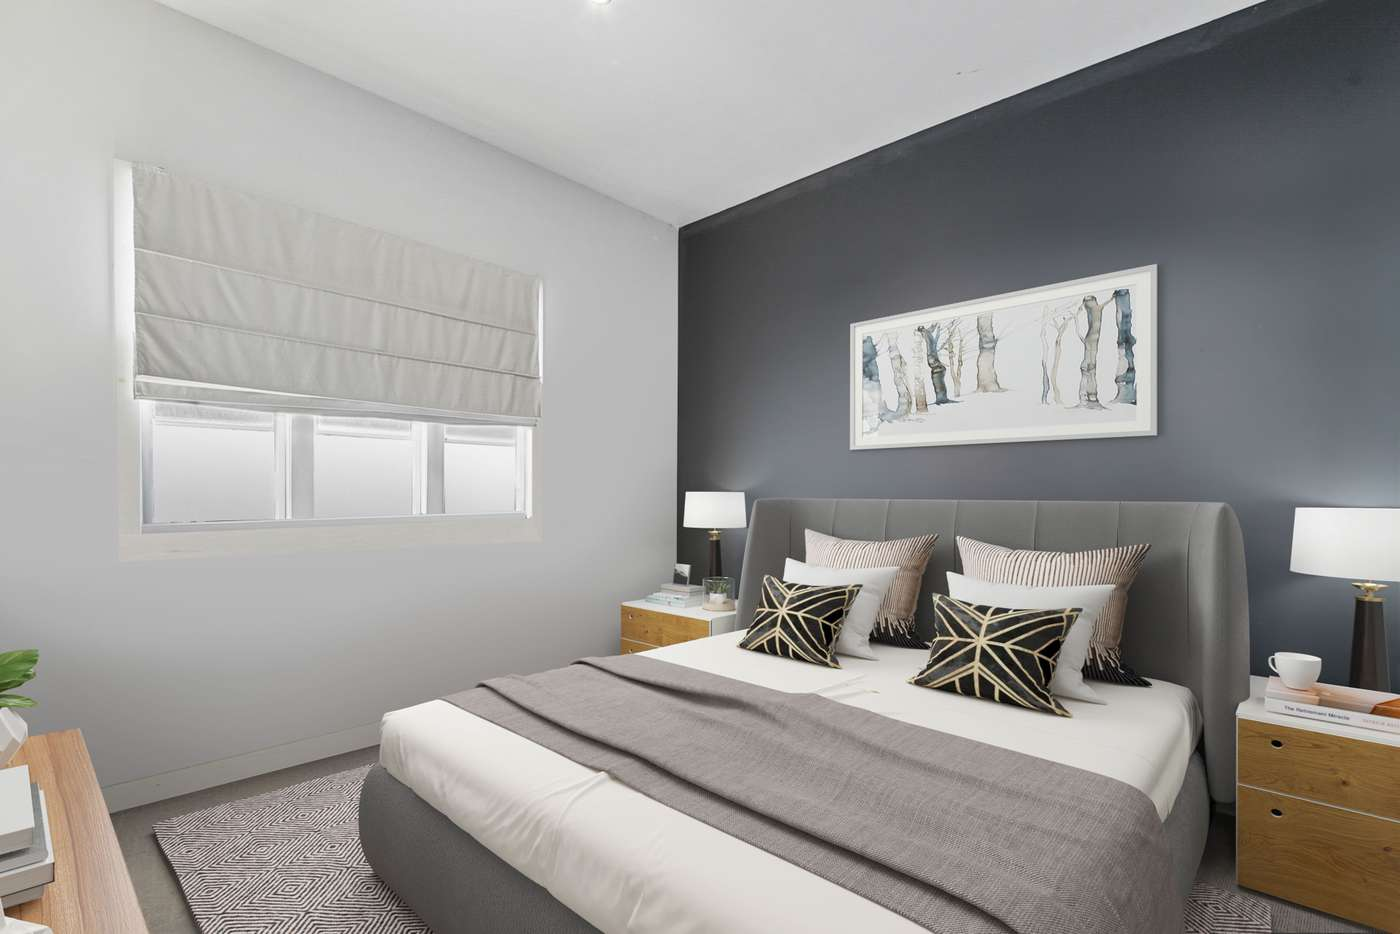 Fifth view of Homely house listing, 33 Mar Street, Holland Park QLD 4121